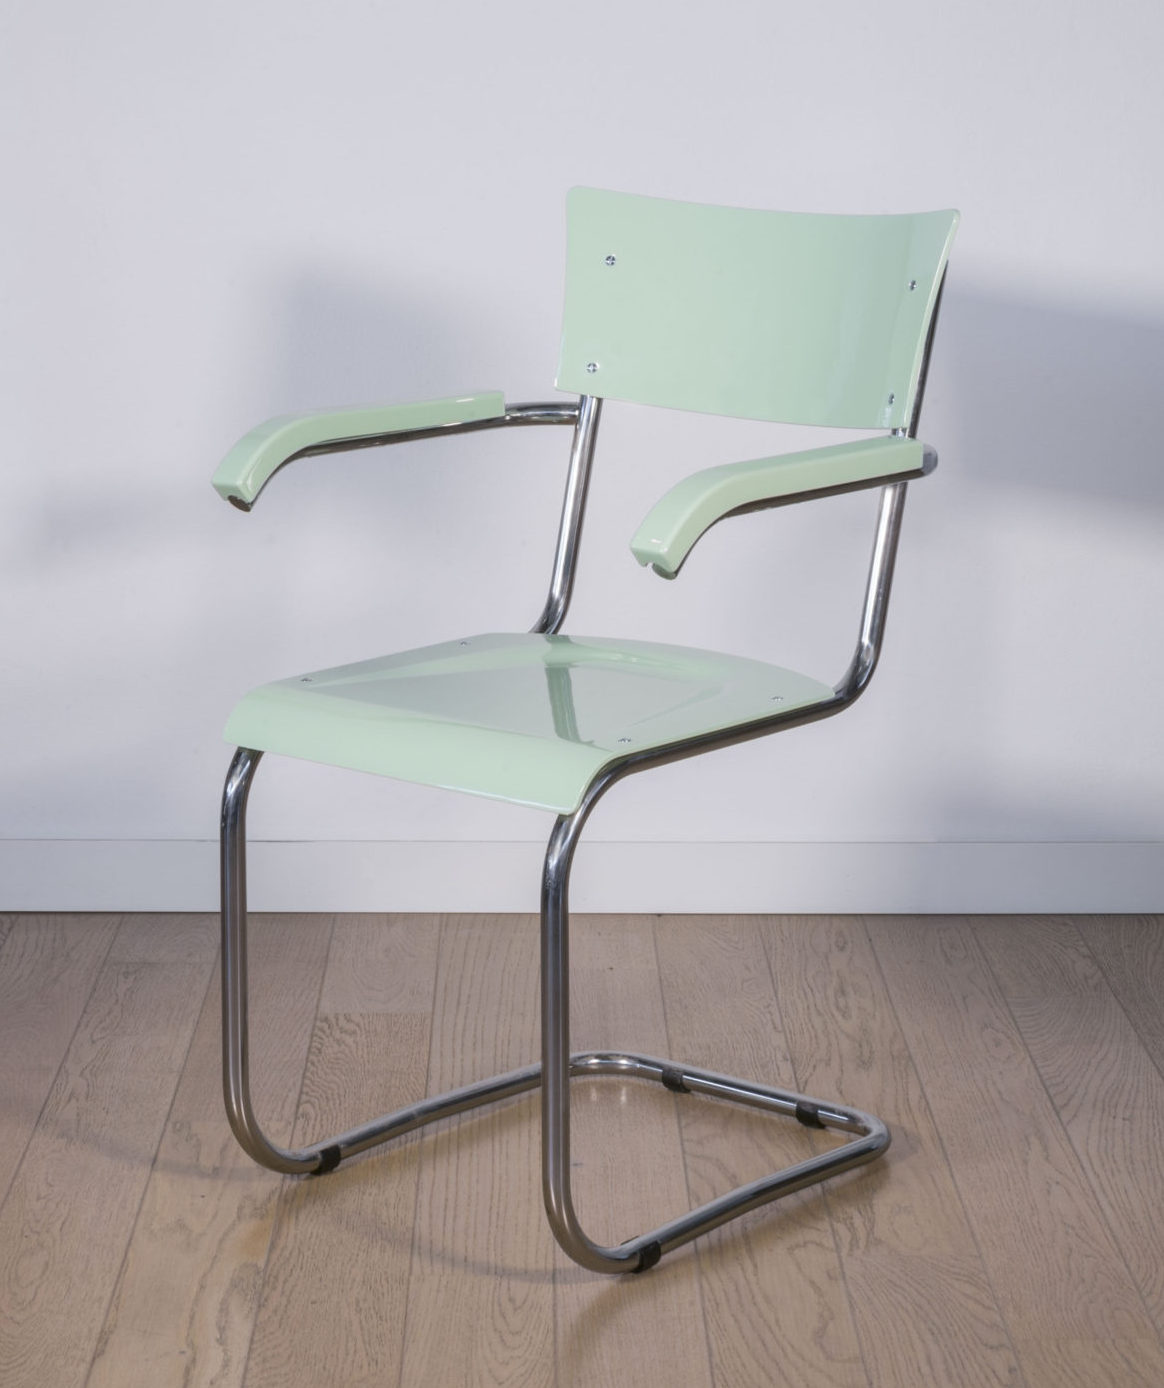 Shock tube chair